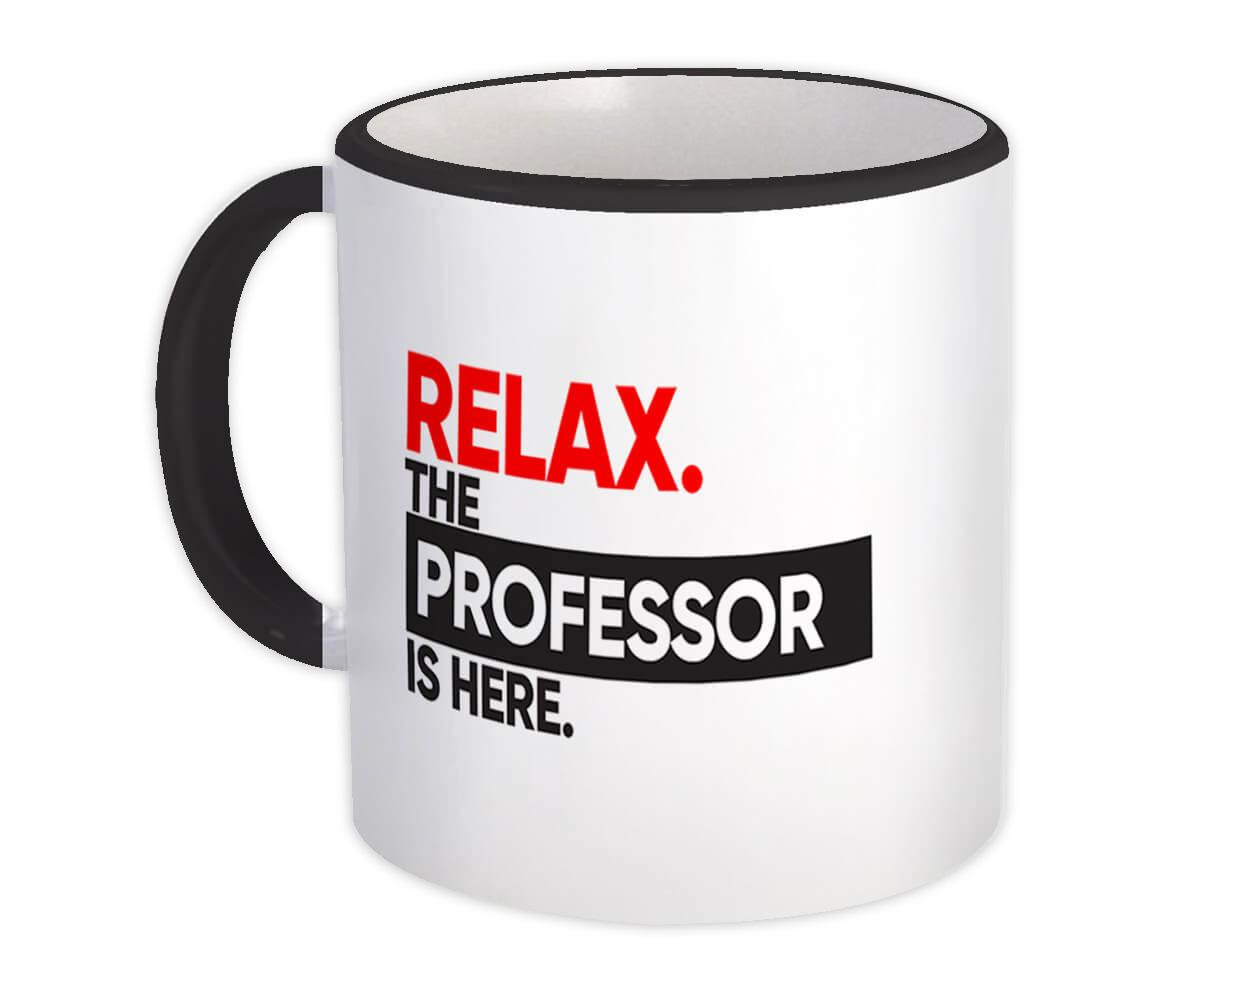 Relax The PROFESSOR is here : Gift Mug Occupation Profession Work Office